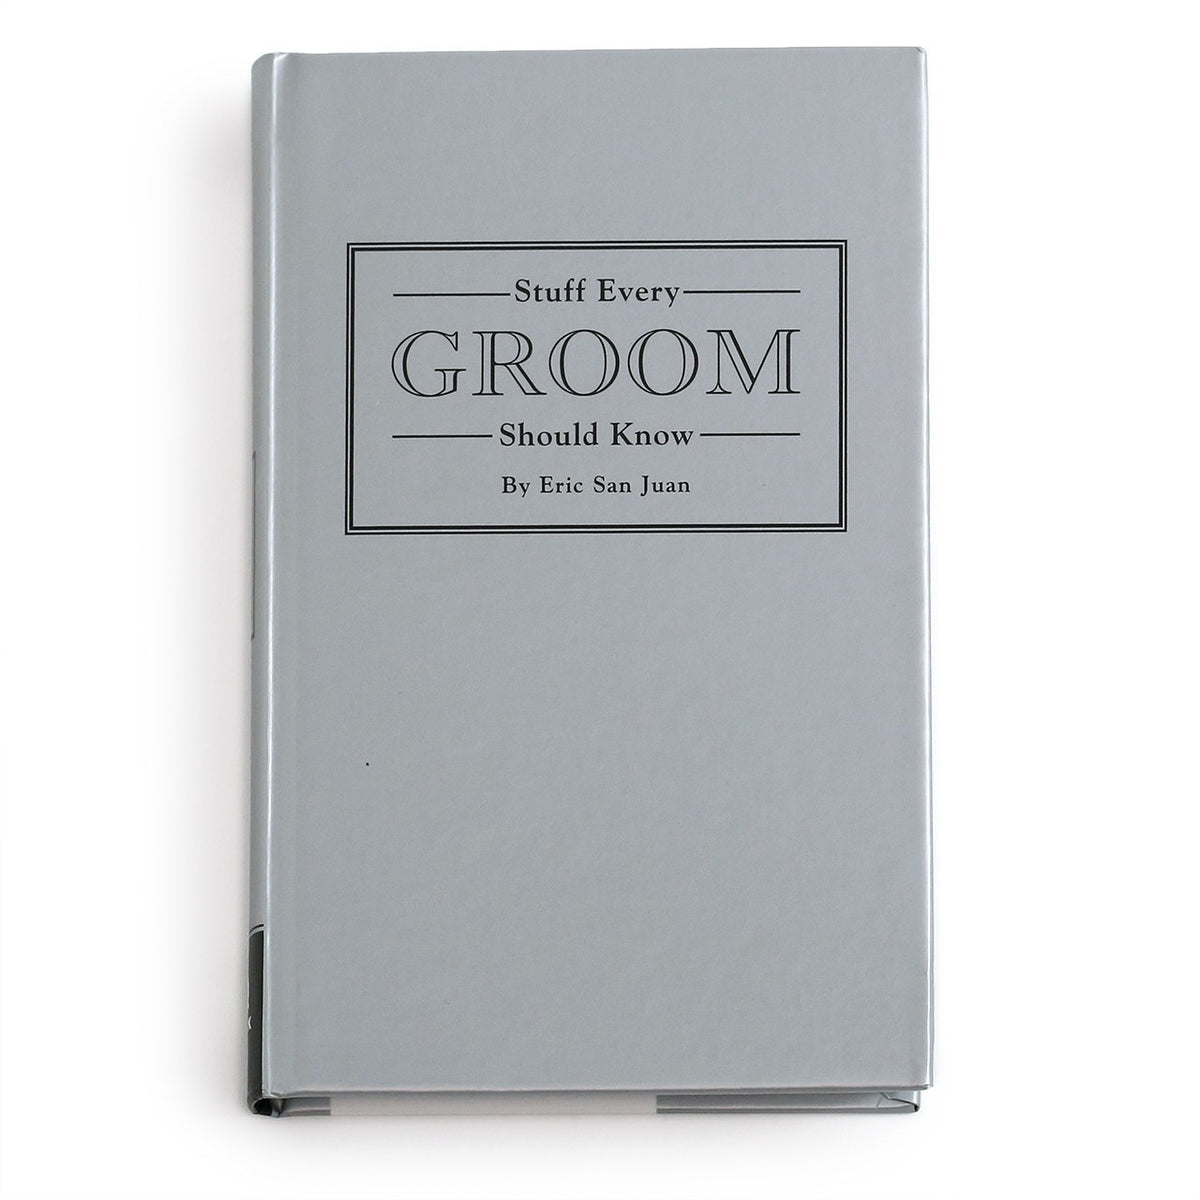 Stuff Every Groom Should Know Book by Eric San Juan